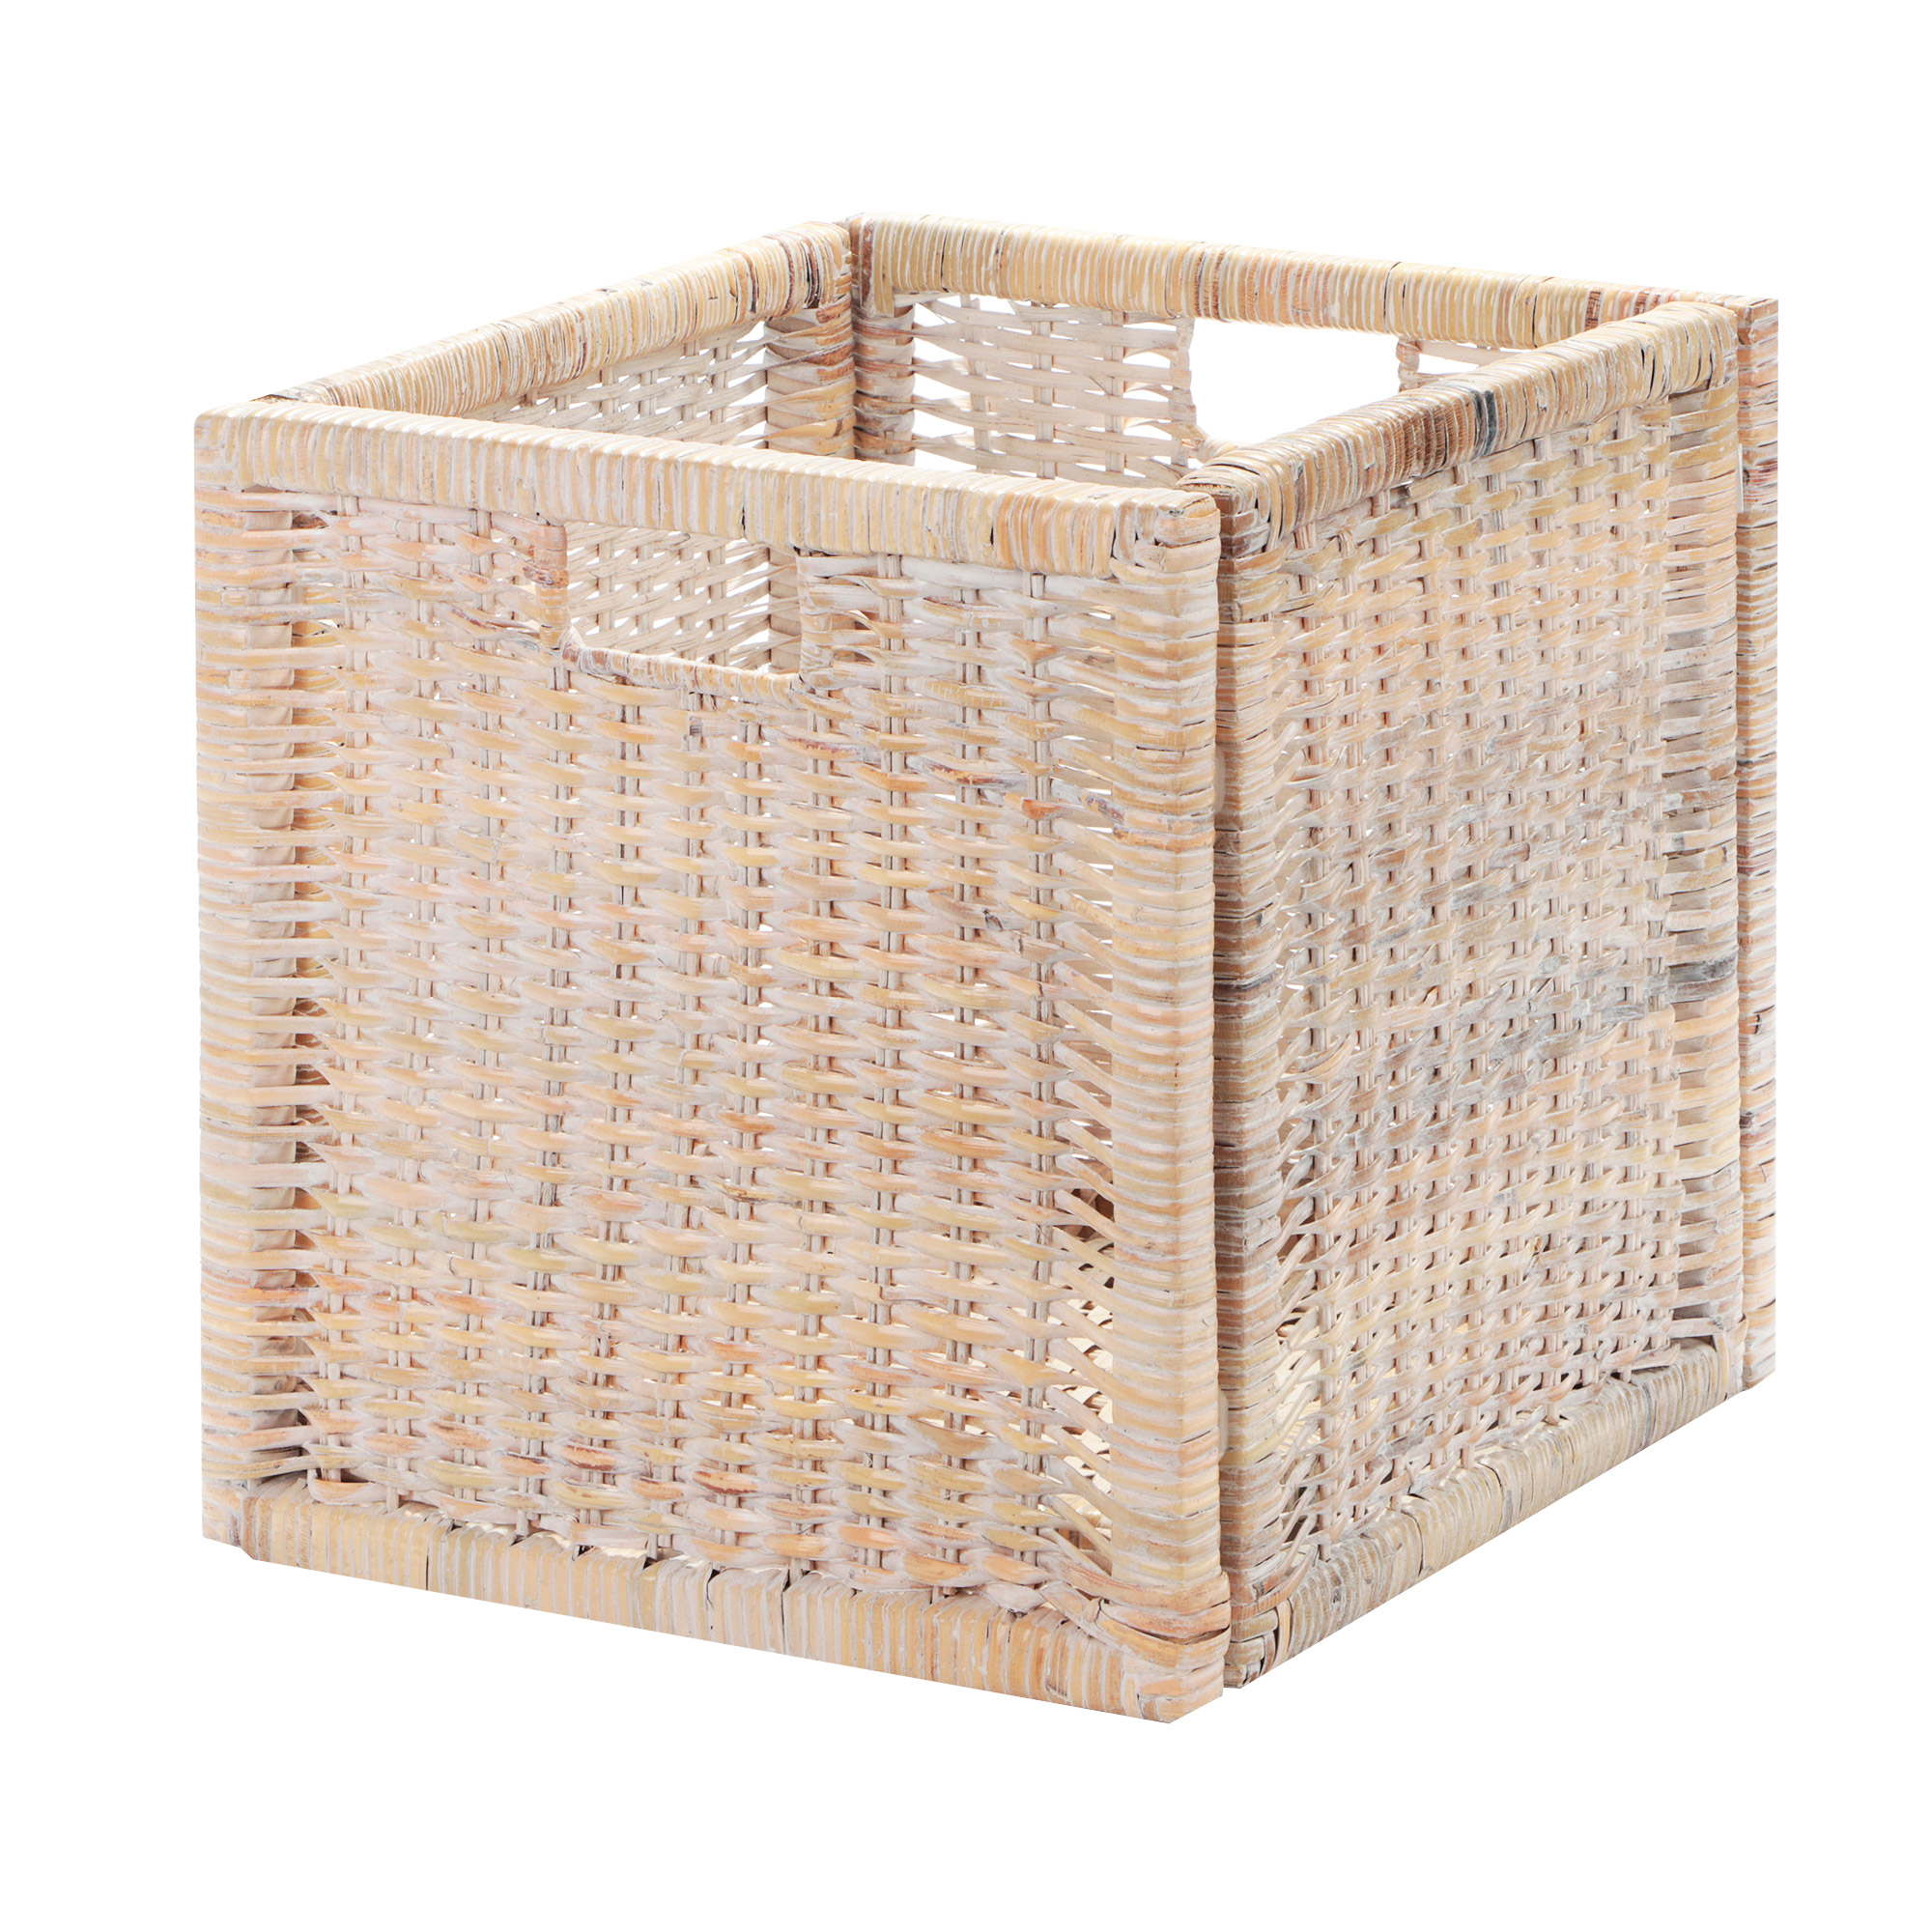 Корзина декоративная Rattan grand amsterdam white wash